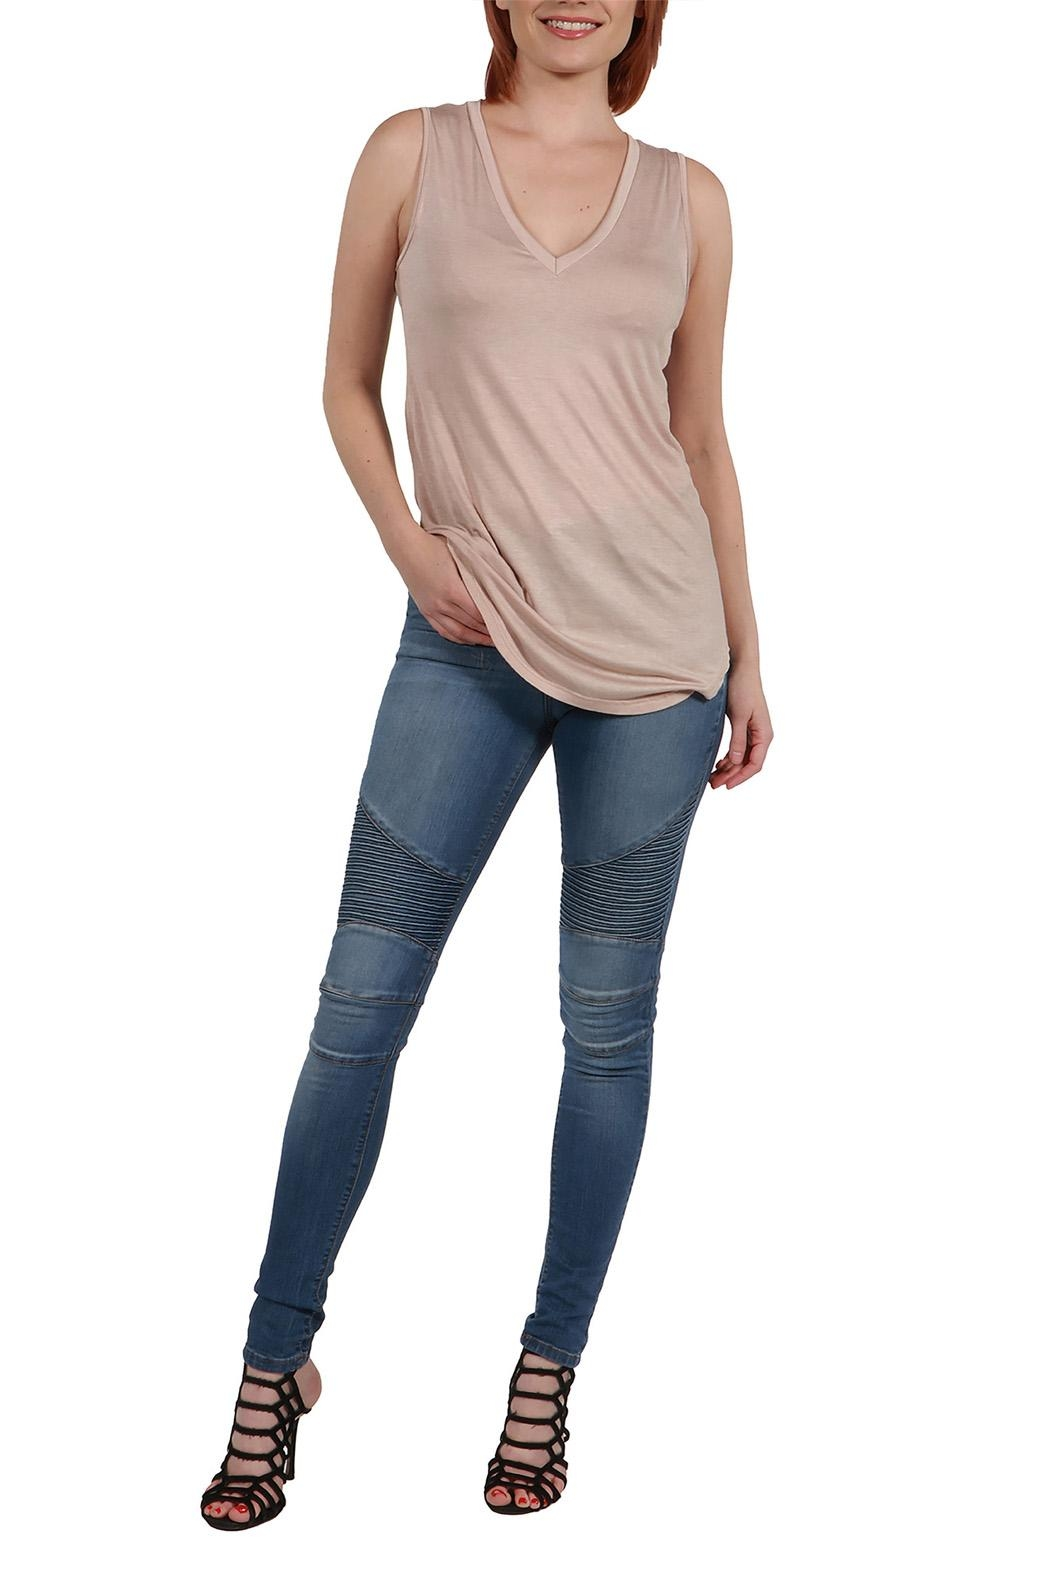 24/7 Comfort Apparel Avery Tunic Top - Side Cropped Image